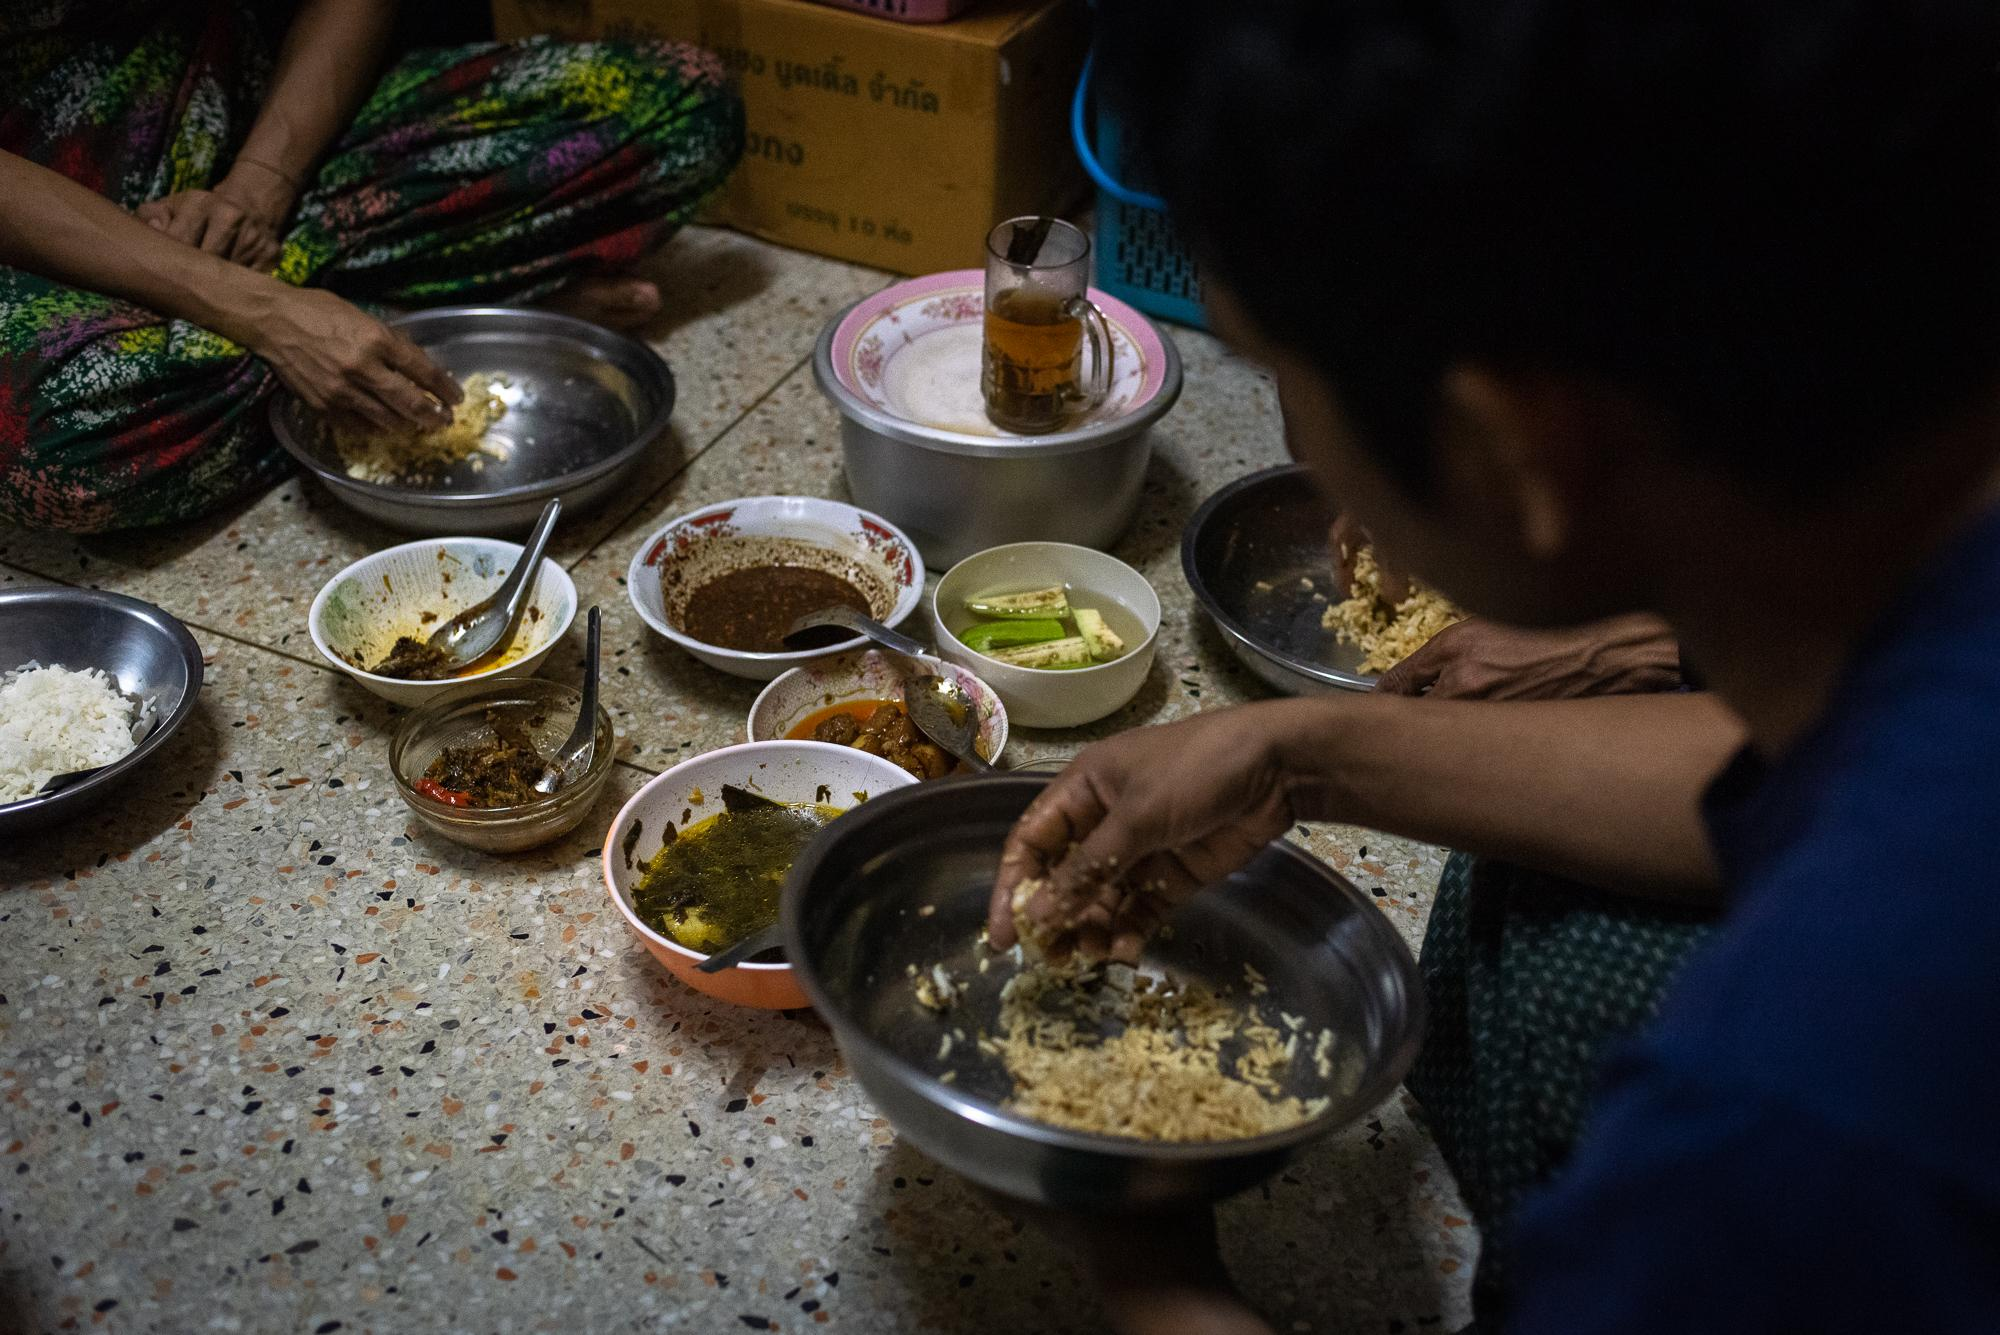 BANGKOK, THAILAND – DECEMBER 11, 2018: Most Burmese workers in Yaowarat prepare their own meals and eat at home, mostly Burmese food. Special ingredients from Myanmar can be found easily in Burmese grocery shops in the neighborhood. They usually eat by using hands, which is common in Myanmar.